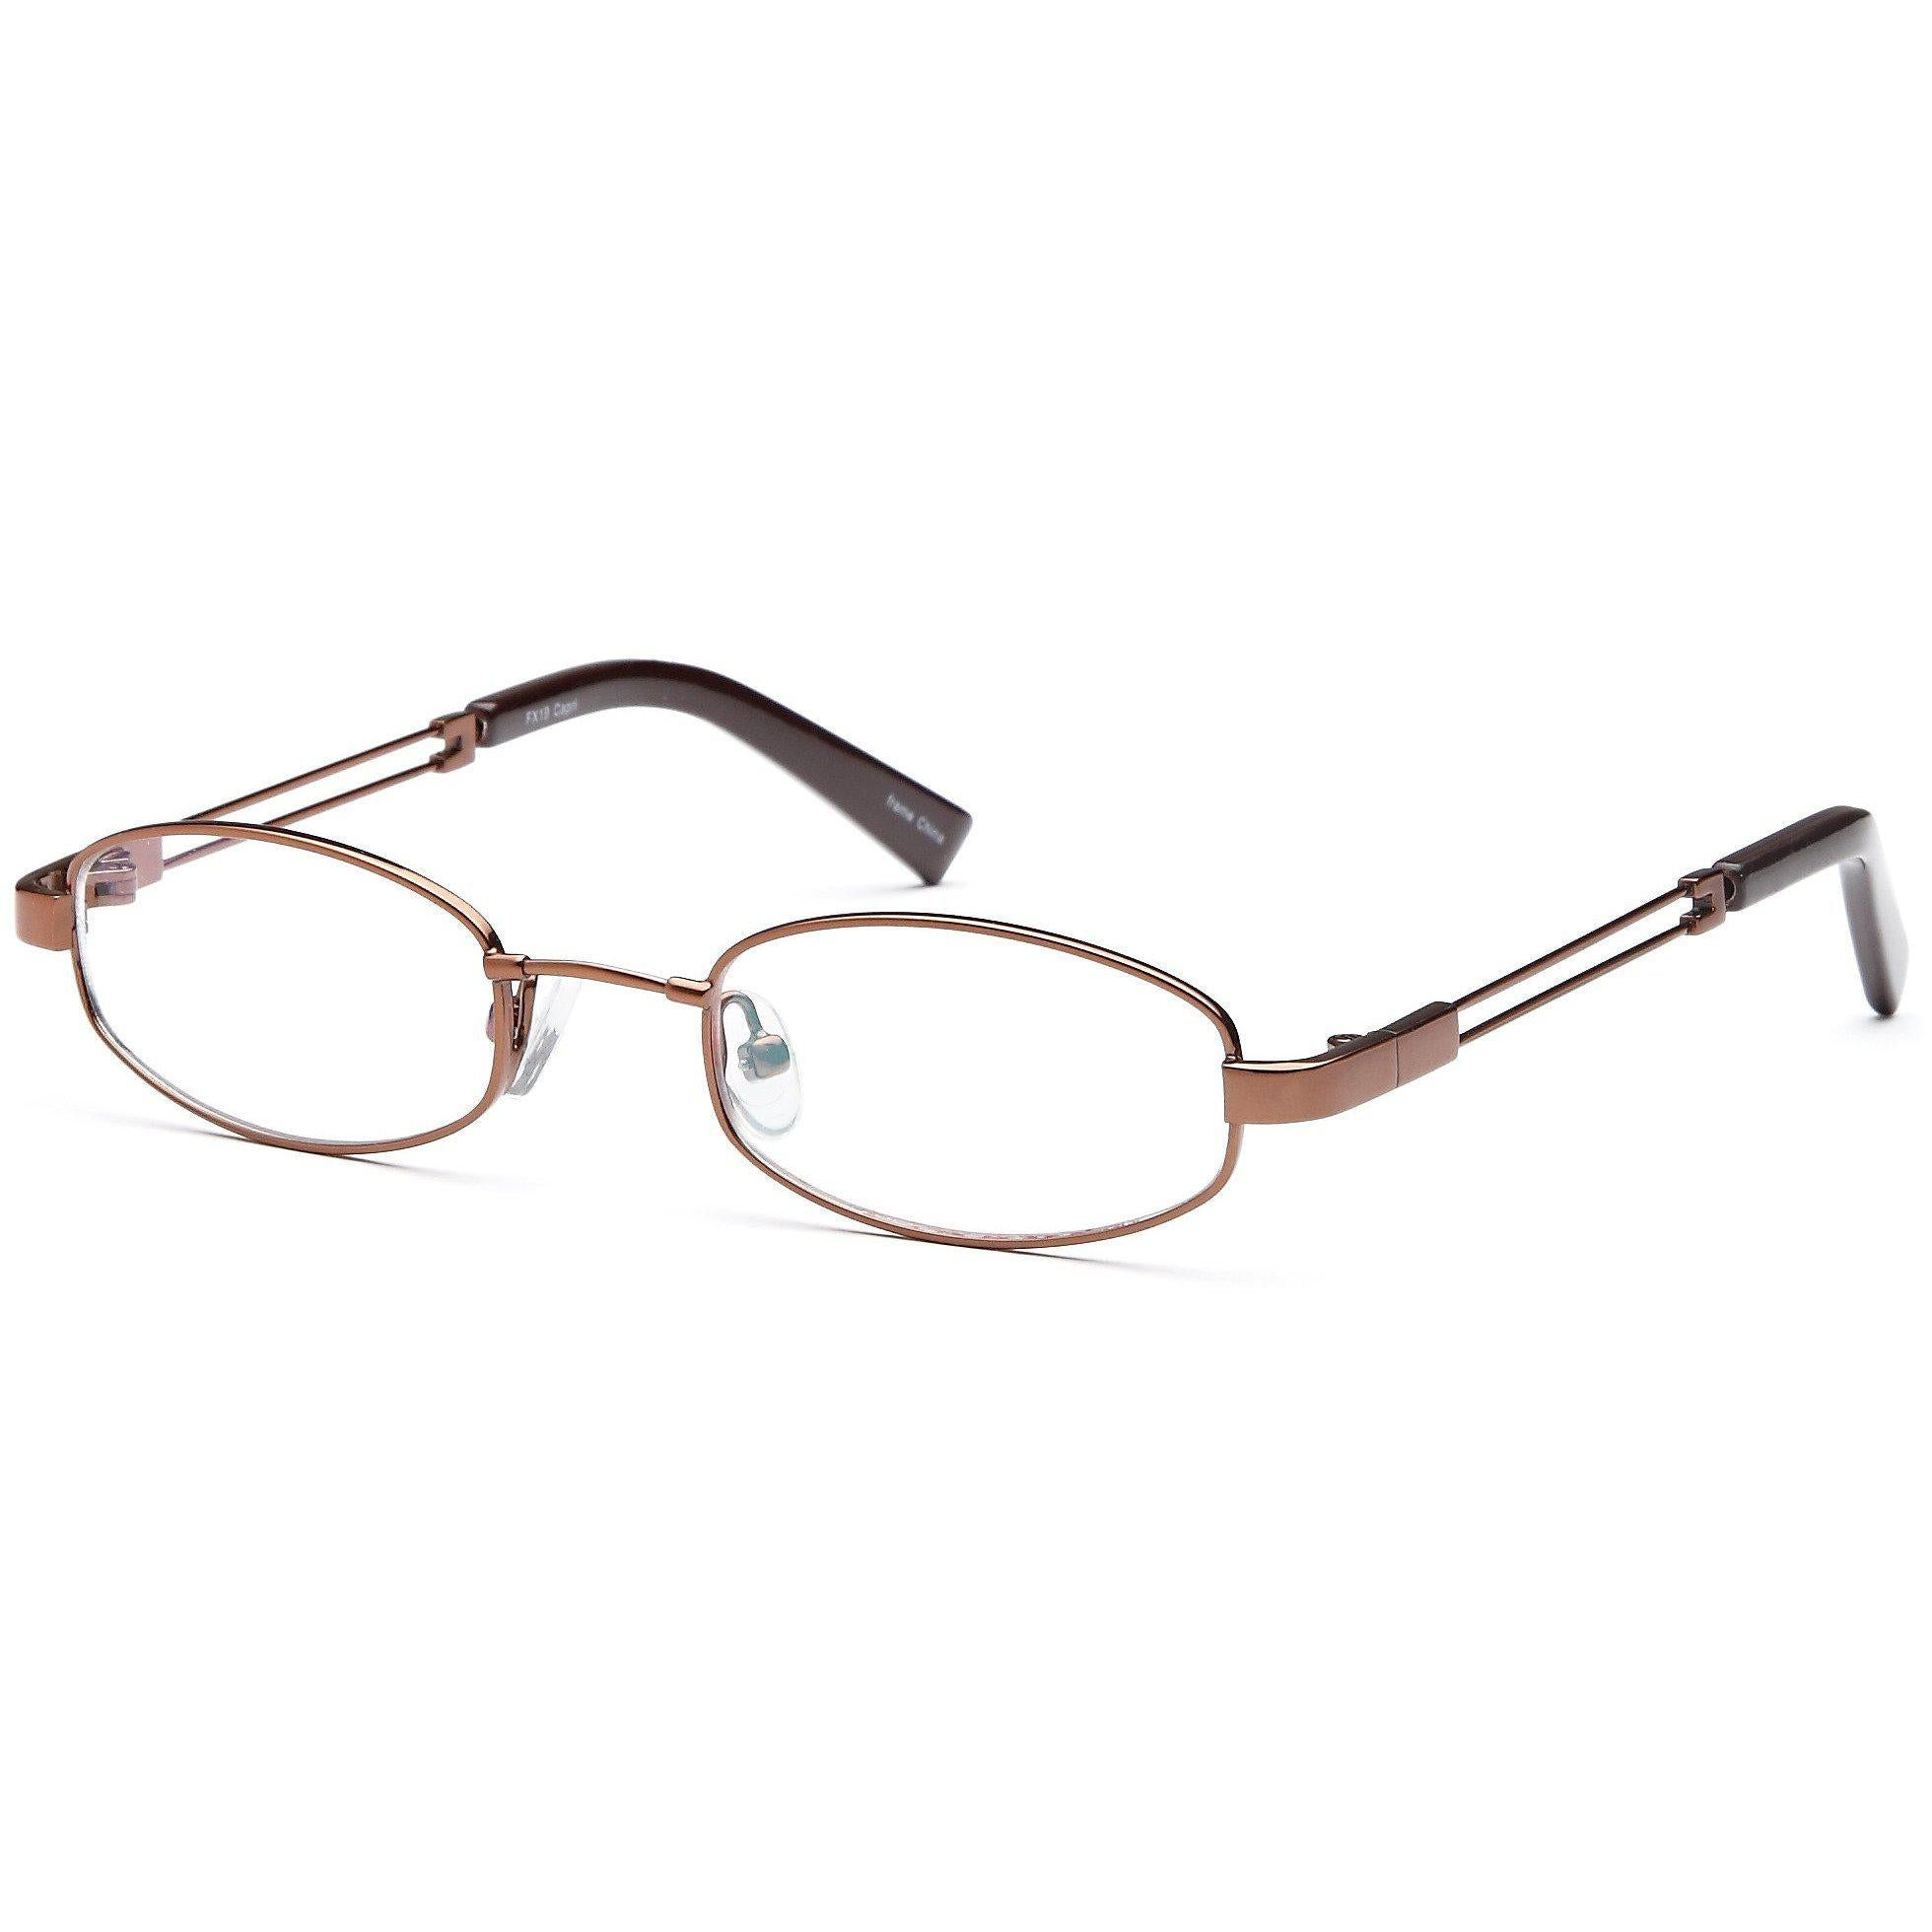 Titanium Prescription Glasses FX 19 Eyeglasses Frame